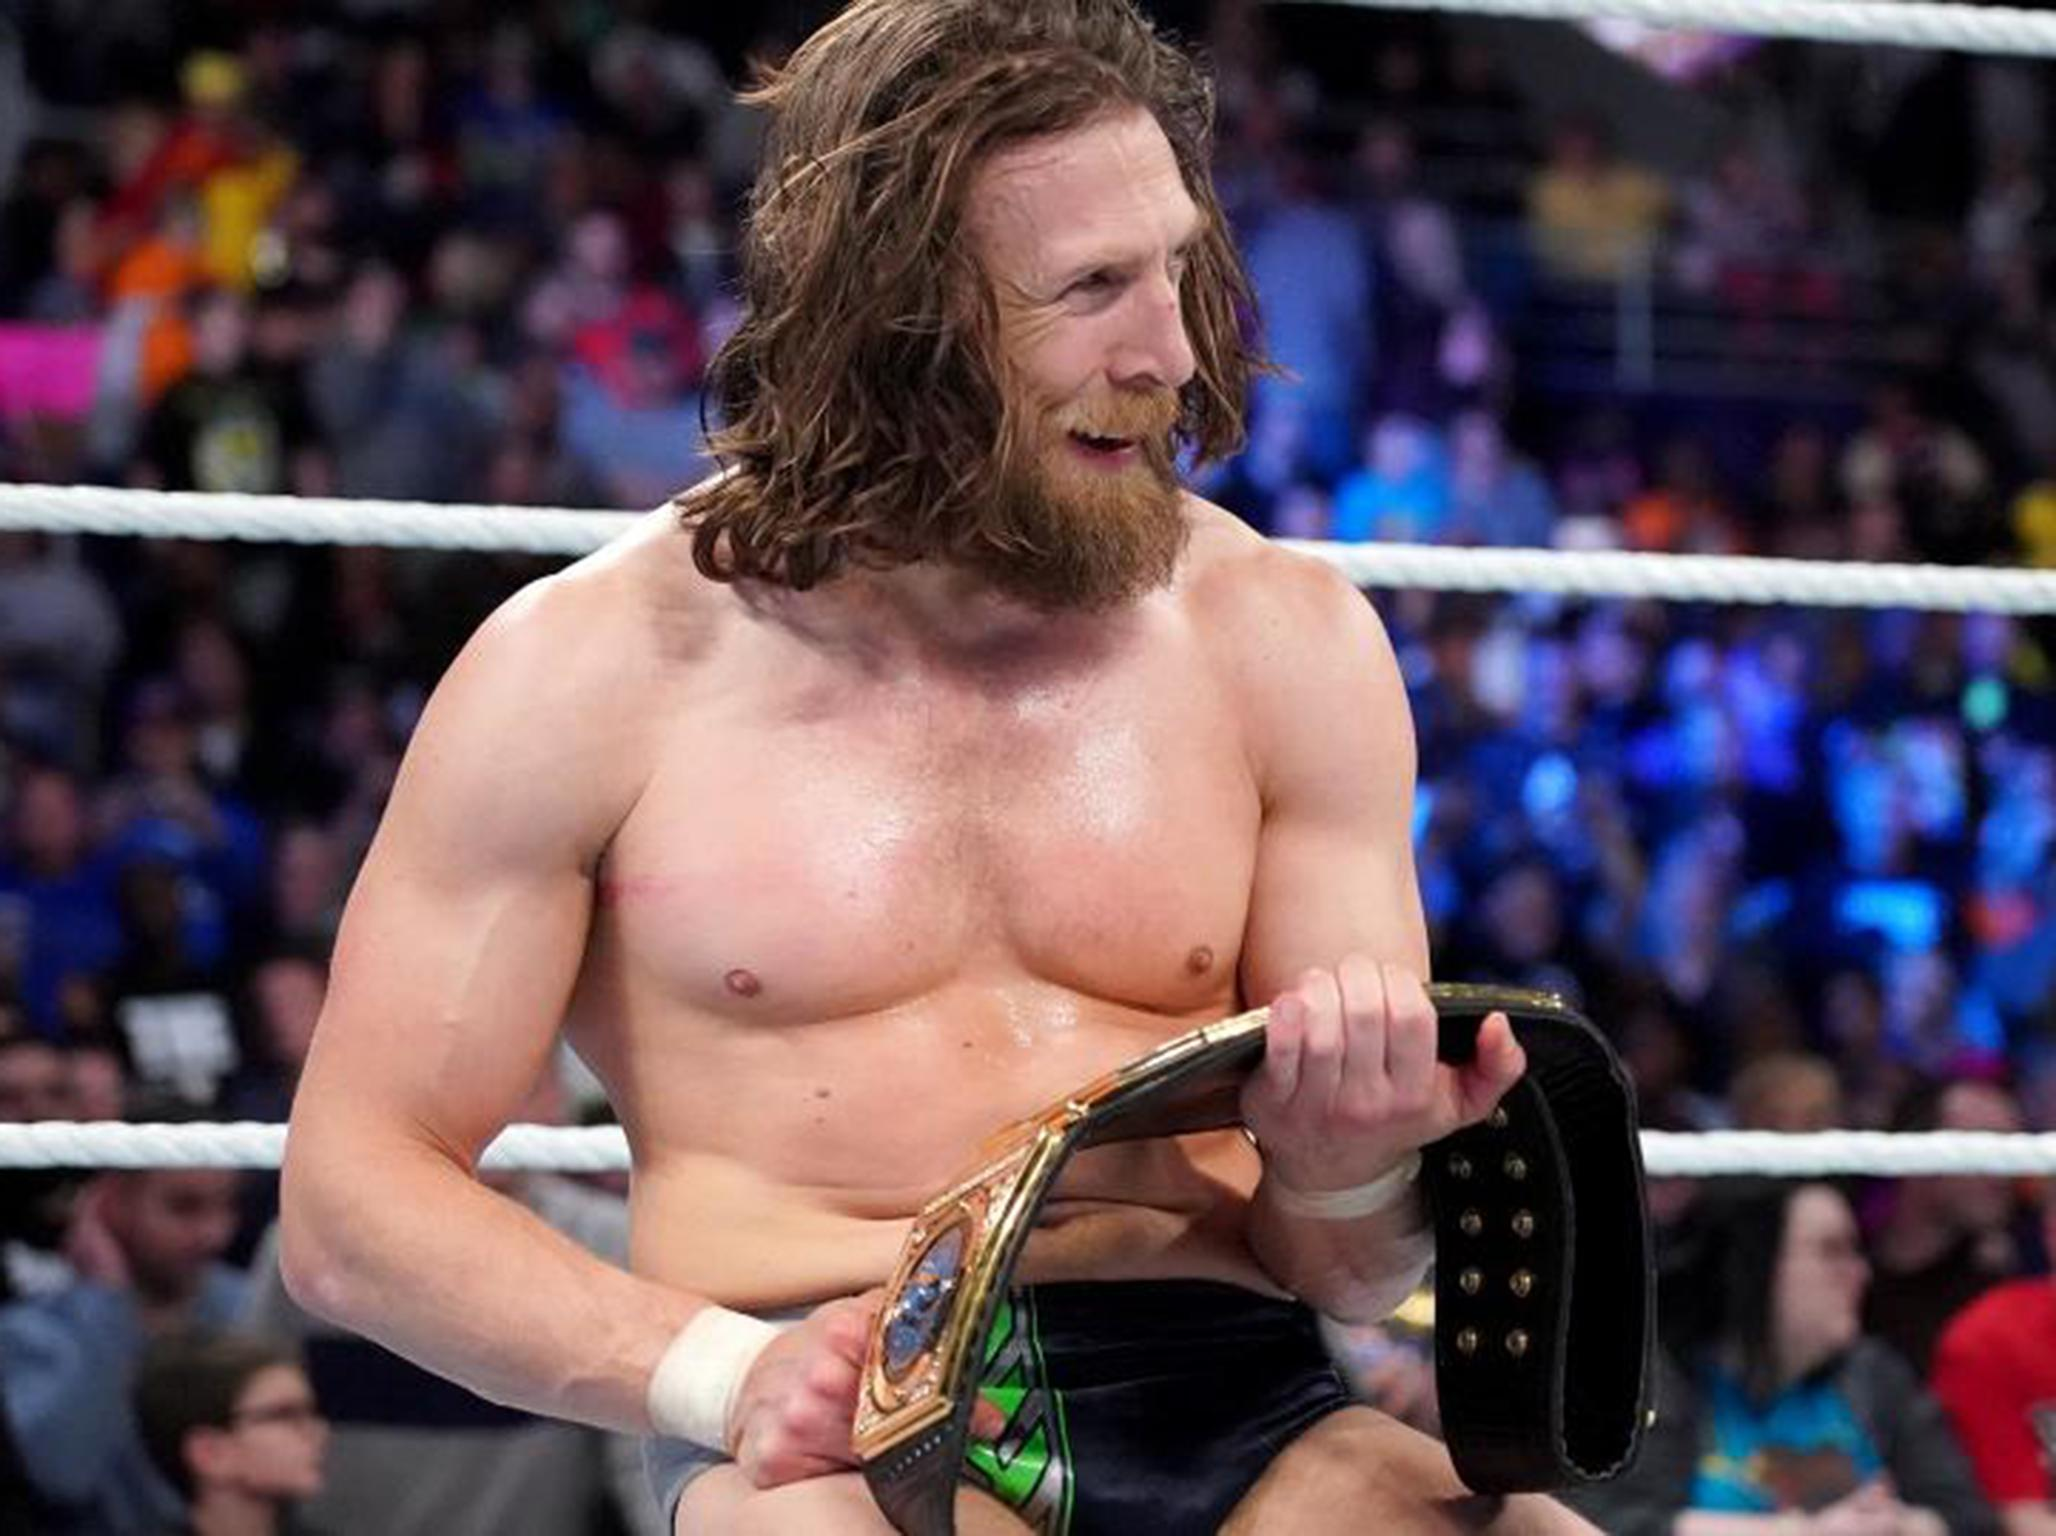 WWE Smackdown results: Daniel Bryan becomes WWE champion after ending AJ Styles' year-long reign